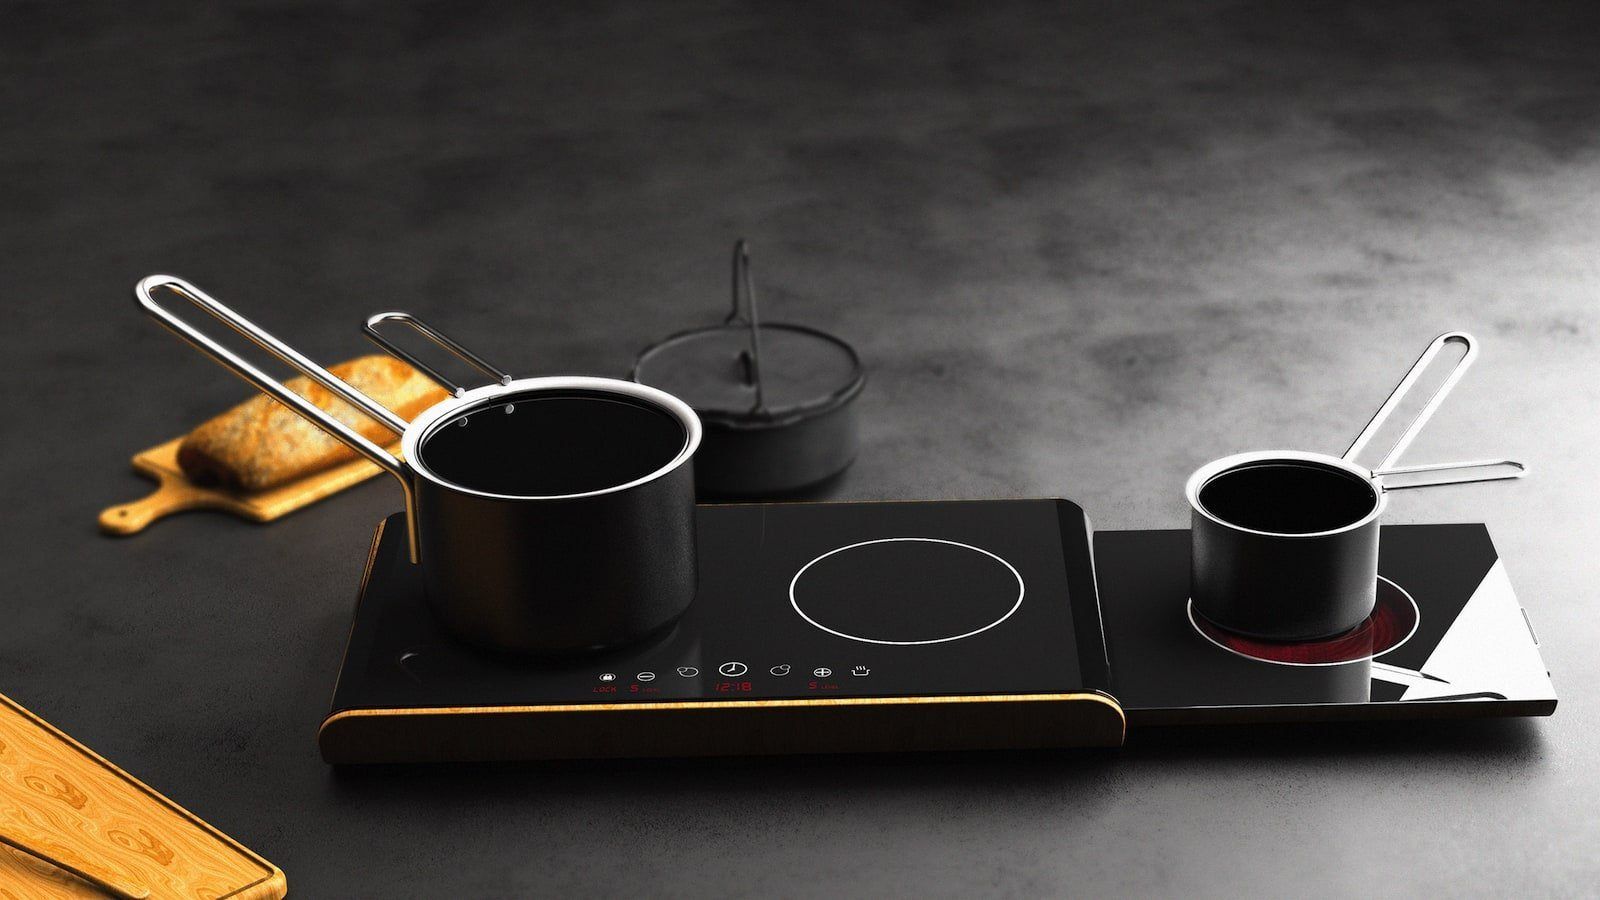 Coolest kitchen gadgets you'd want to have now